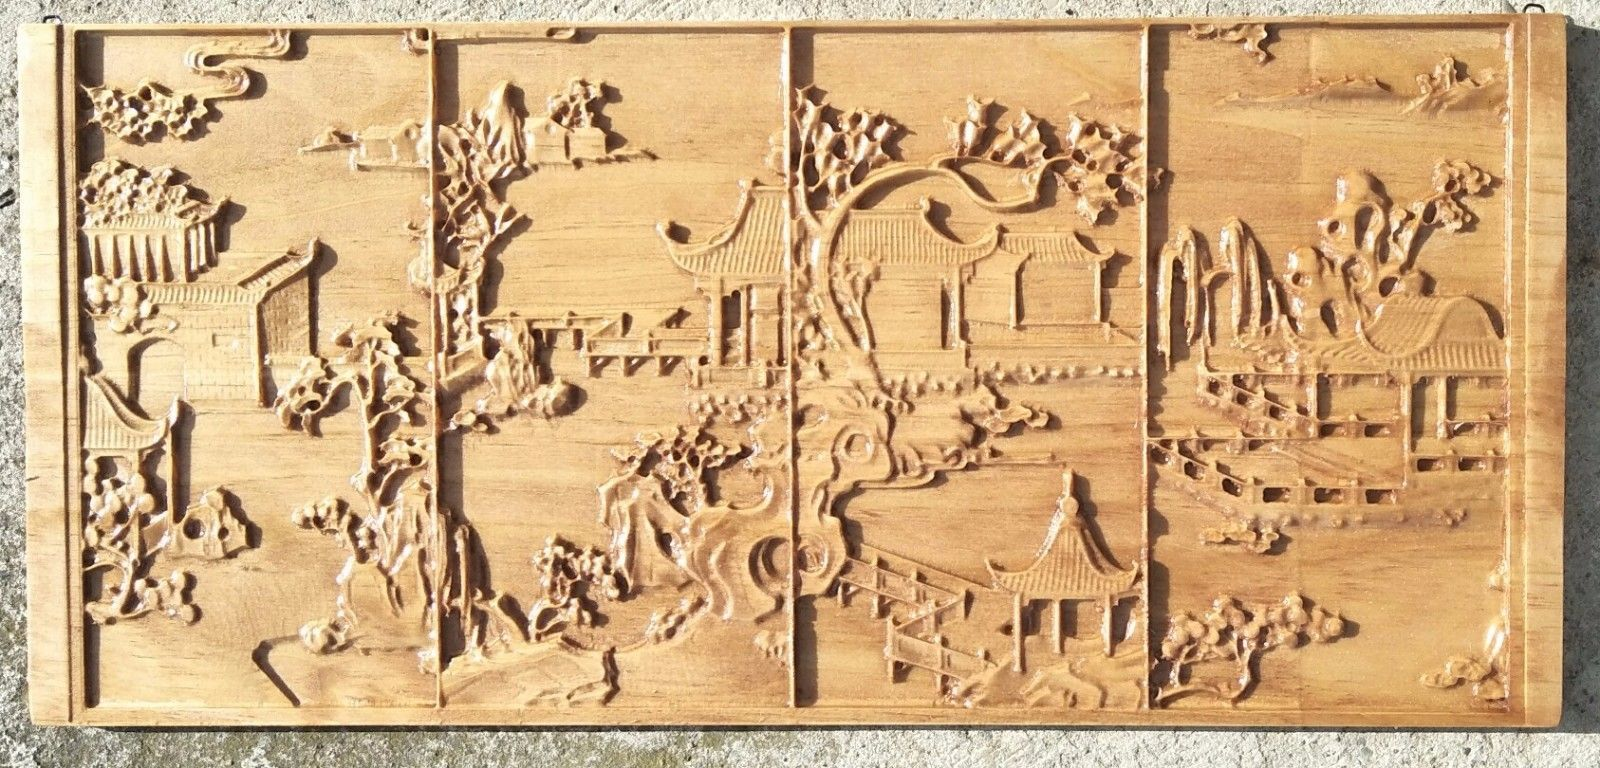 Instruction Books and Media 183149: Wood Carving, Wall Art, 3D Wood ...